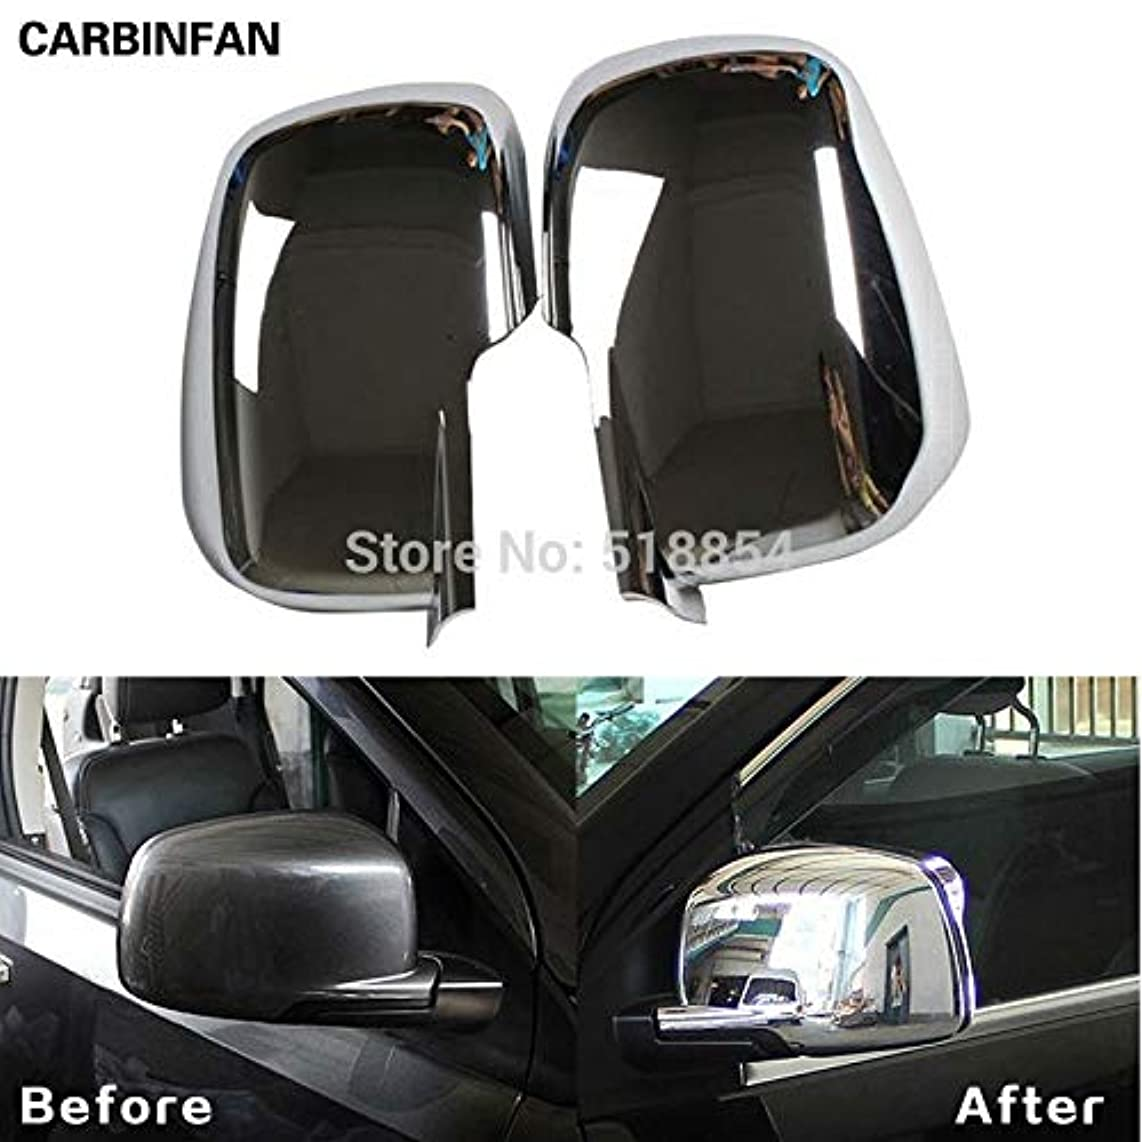 Exterior Parts Ytn Abs Chrome Side Mirror Cover Trim Molding Exterior 2Pcs/Set For 2012 2013 Fiat Freemont 12 13